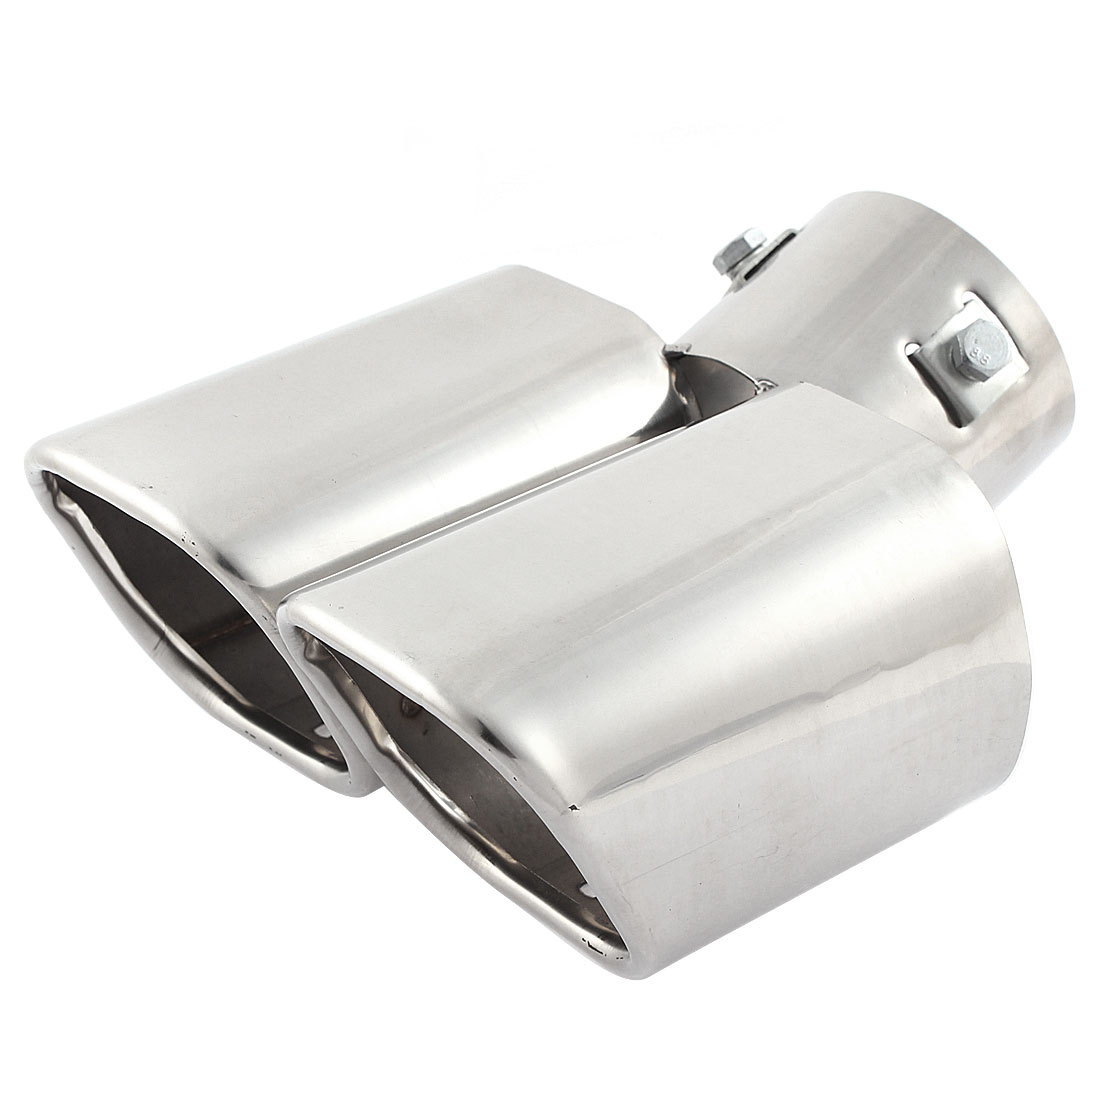 Auto Car 60mm Inlet Slant Double Tip Exhaust Muffler Tail Pipe for Honda